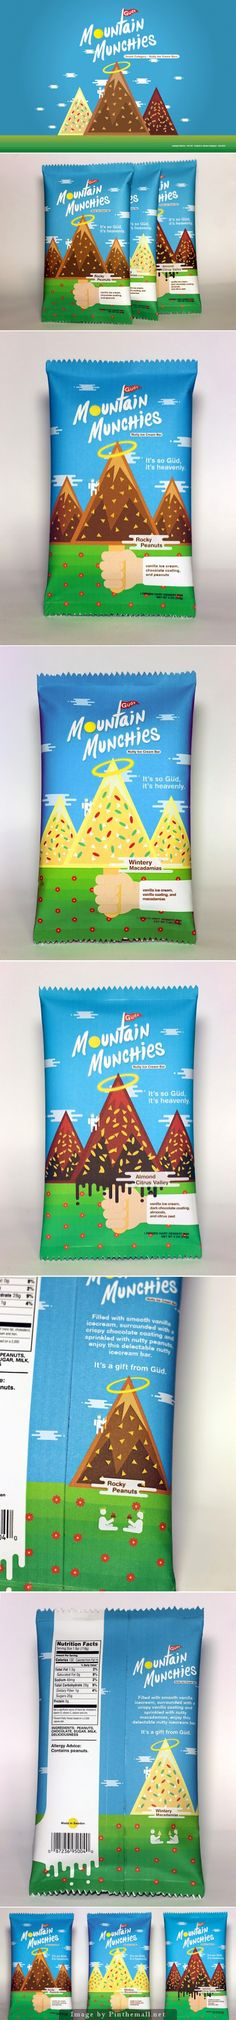 Güd\'s Mountain Munchies (Student Project) by Jewelyn Butron